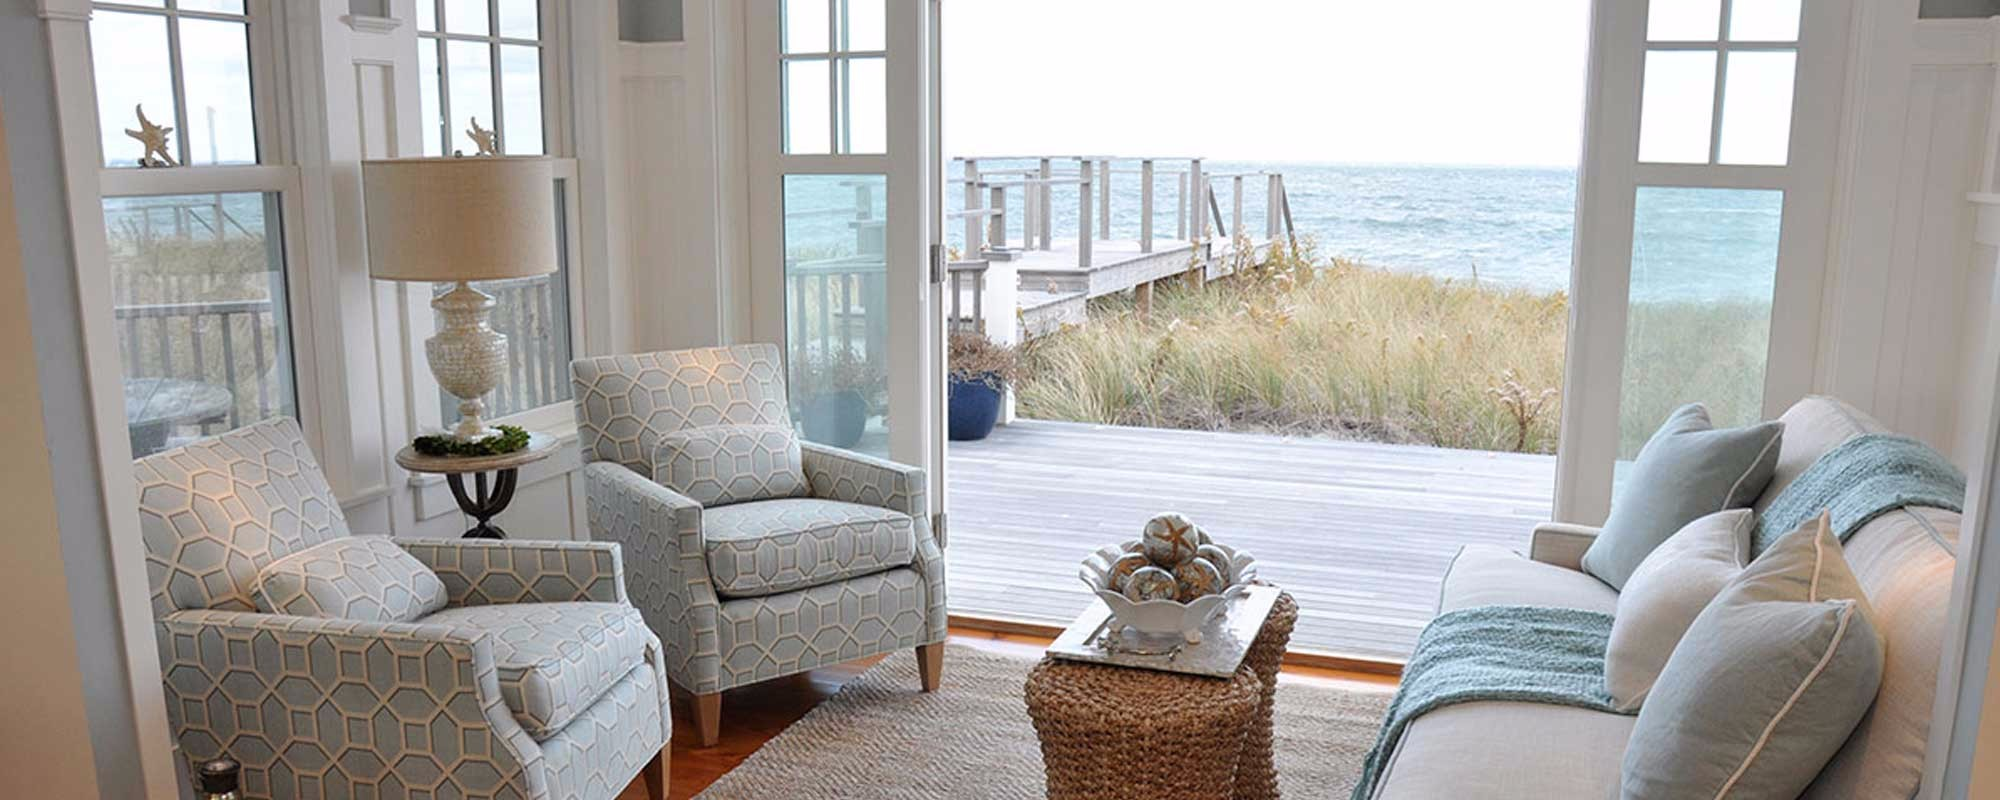 Interior design cape cod ma casabella interiors for Interior motives accents and designs